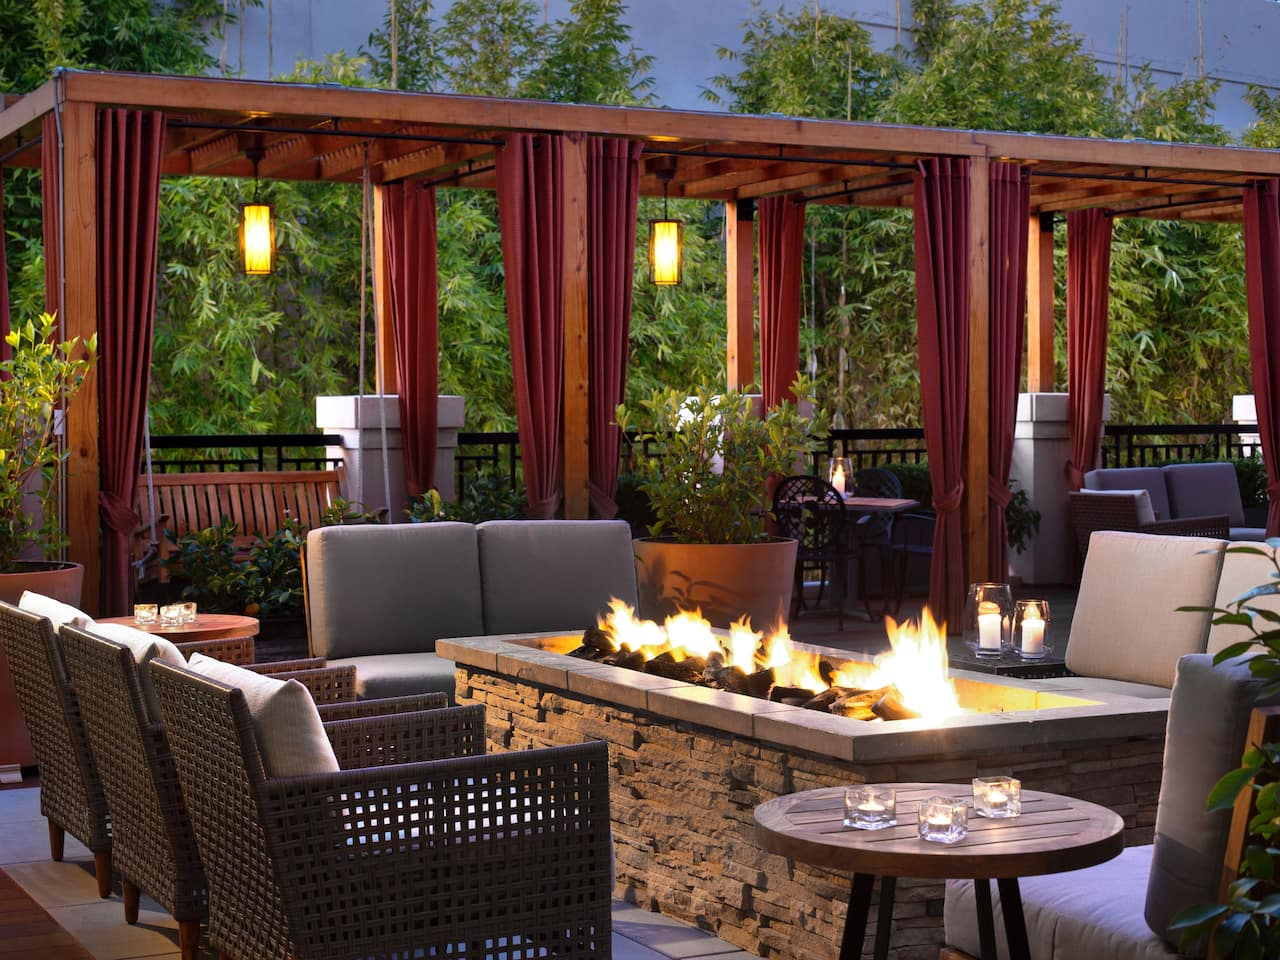 Andaz Napa fireplace